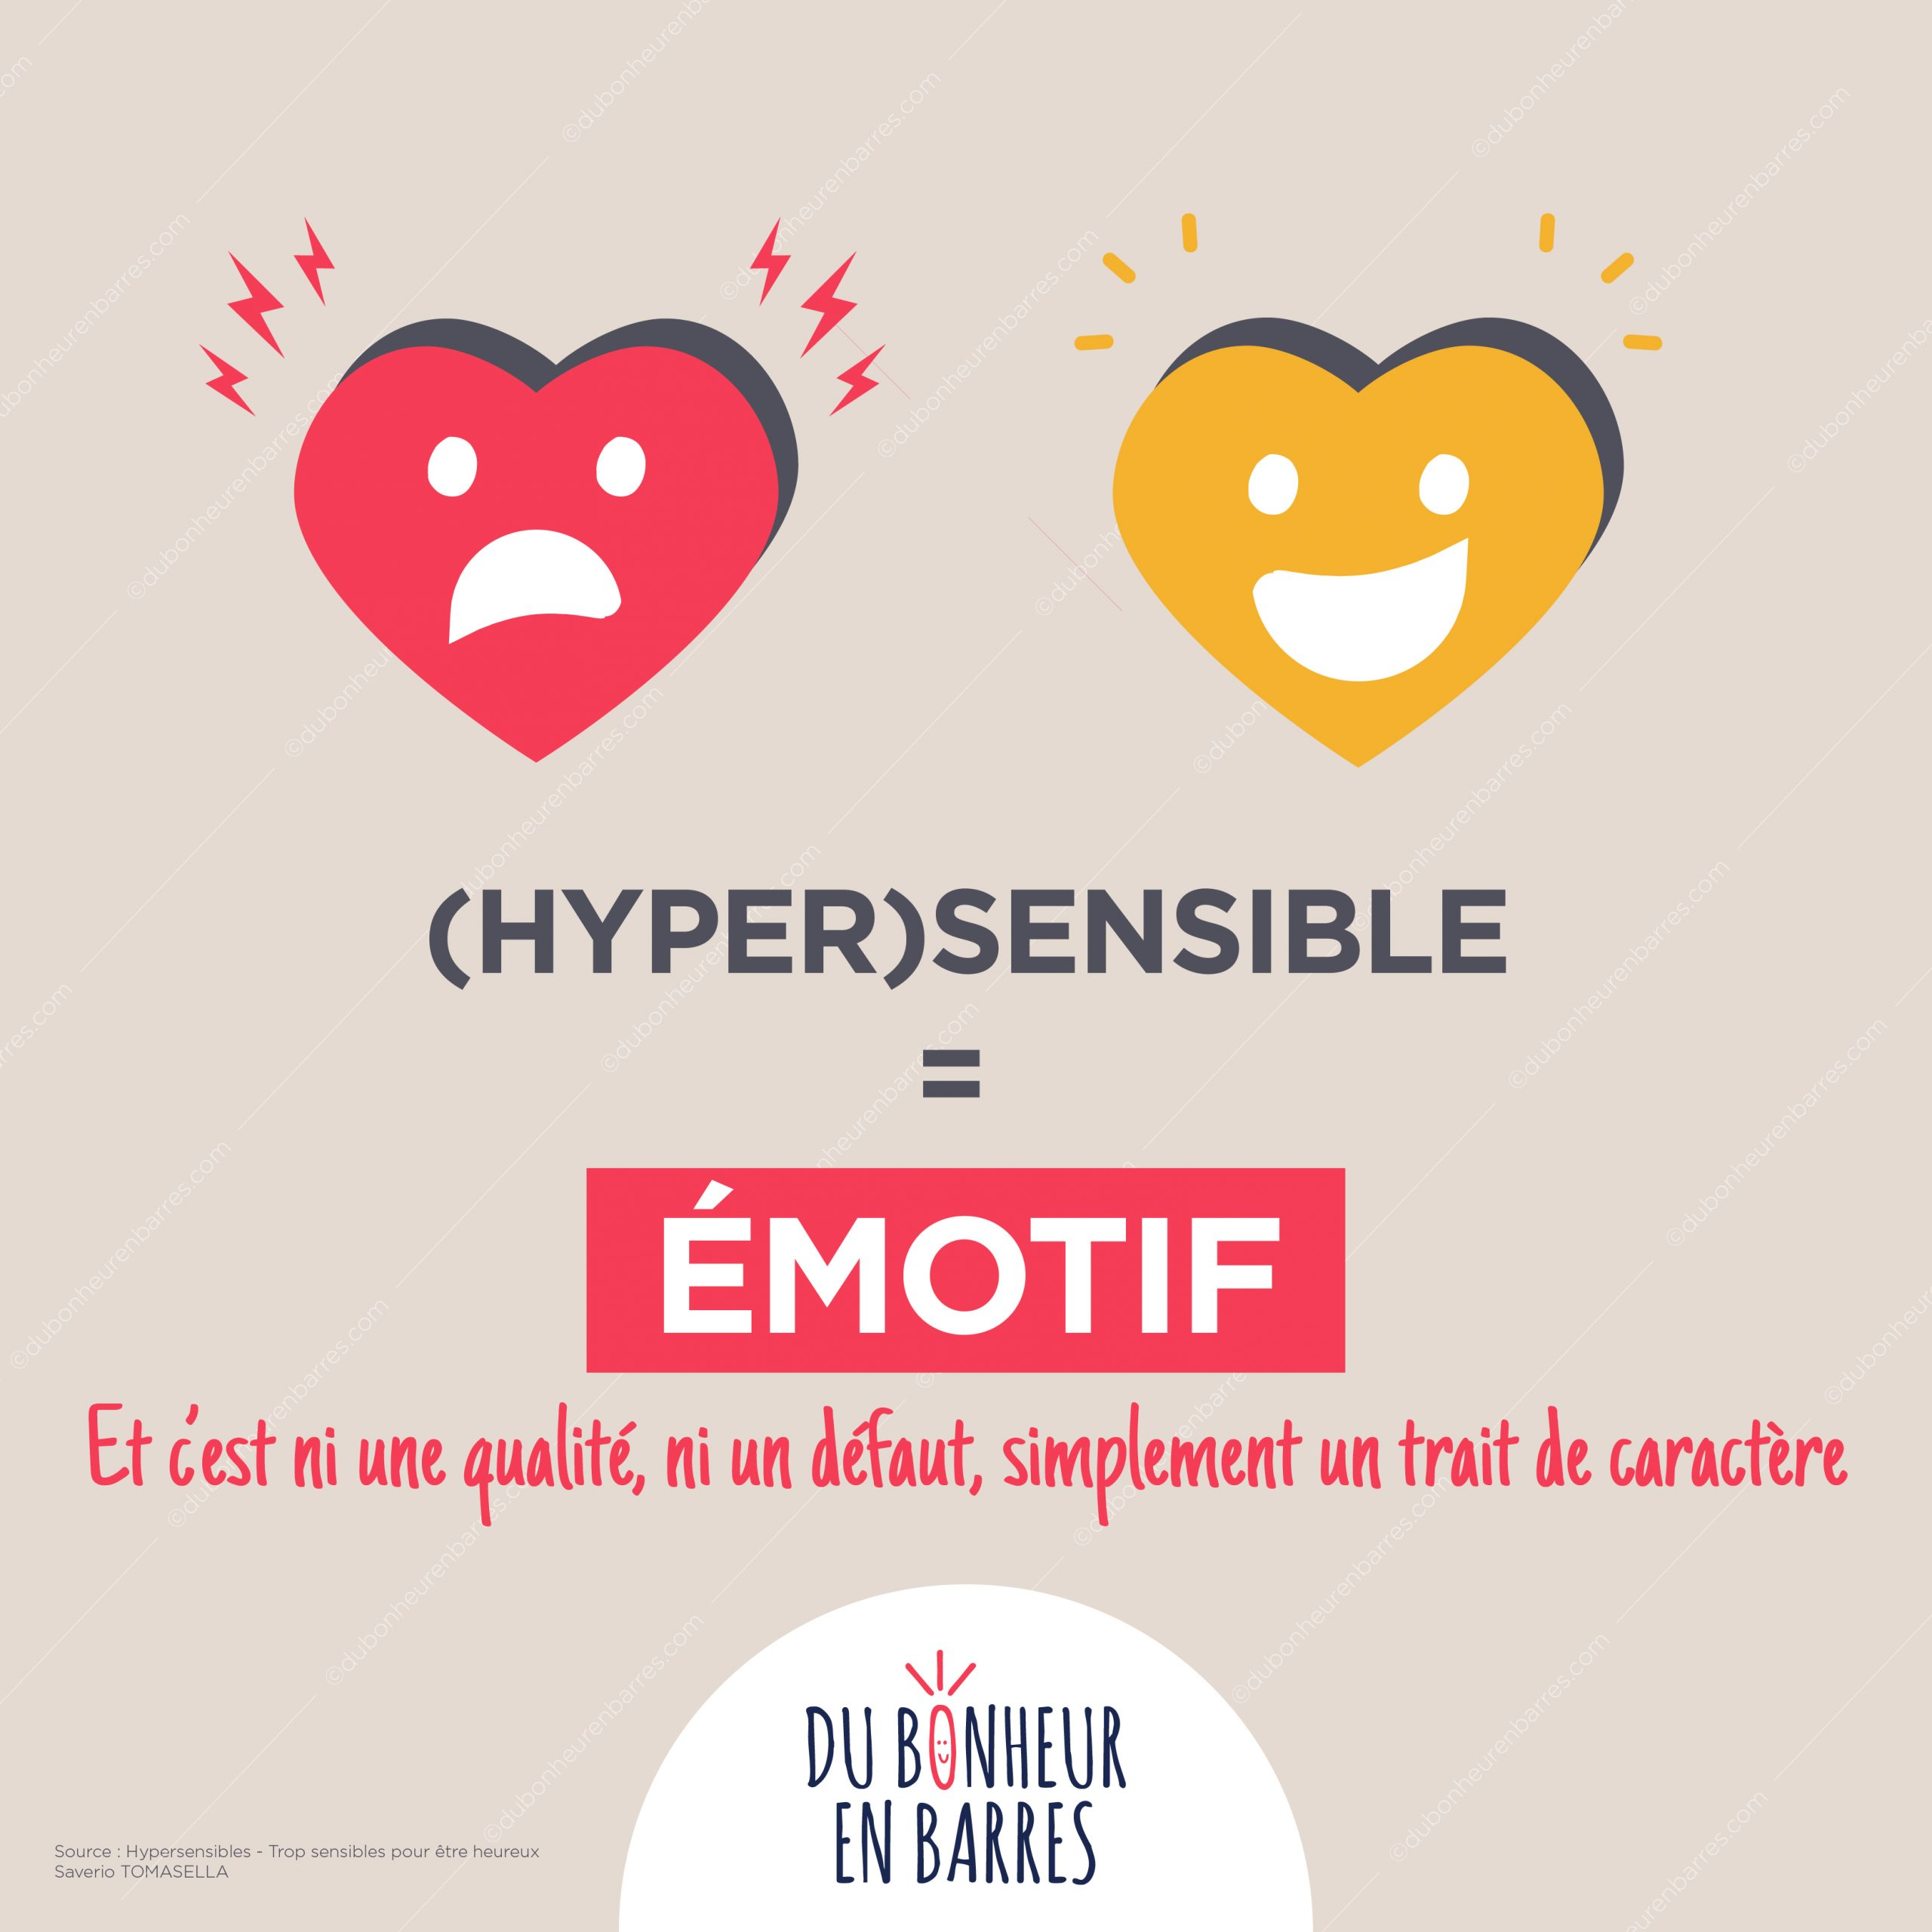 Hypersensible = émotif